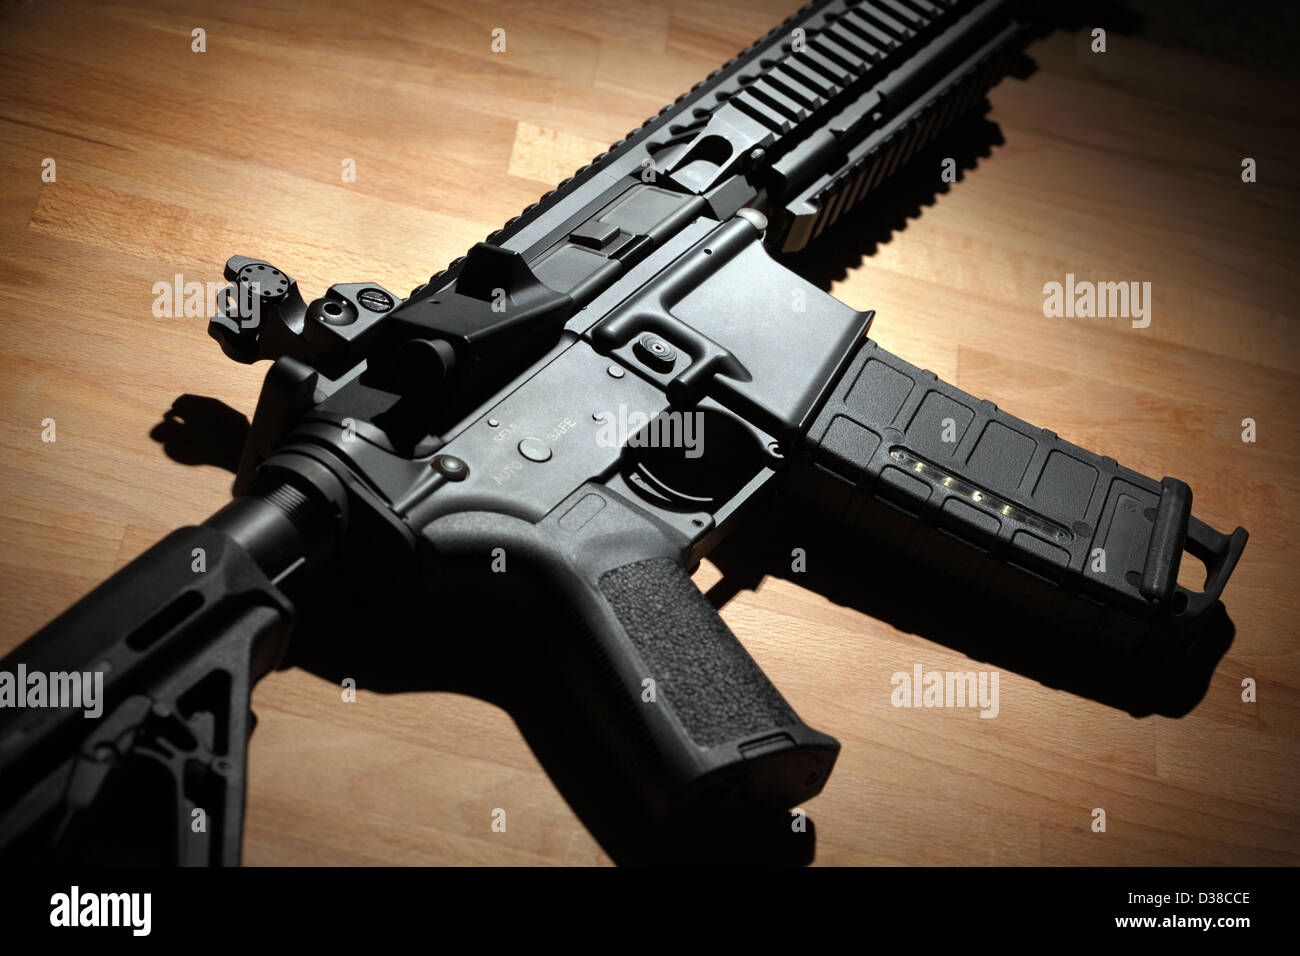 Modern custom AR-15 (M4A1) carbine on a wooden surface. Studio shot - Stock Image